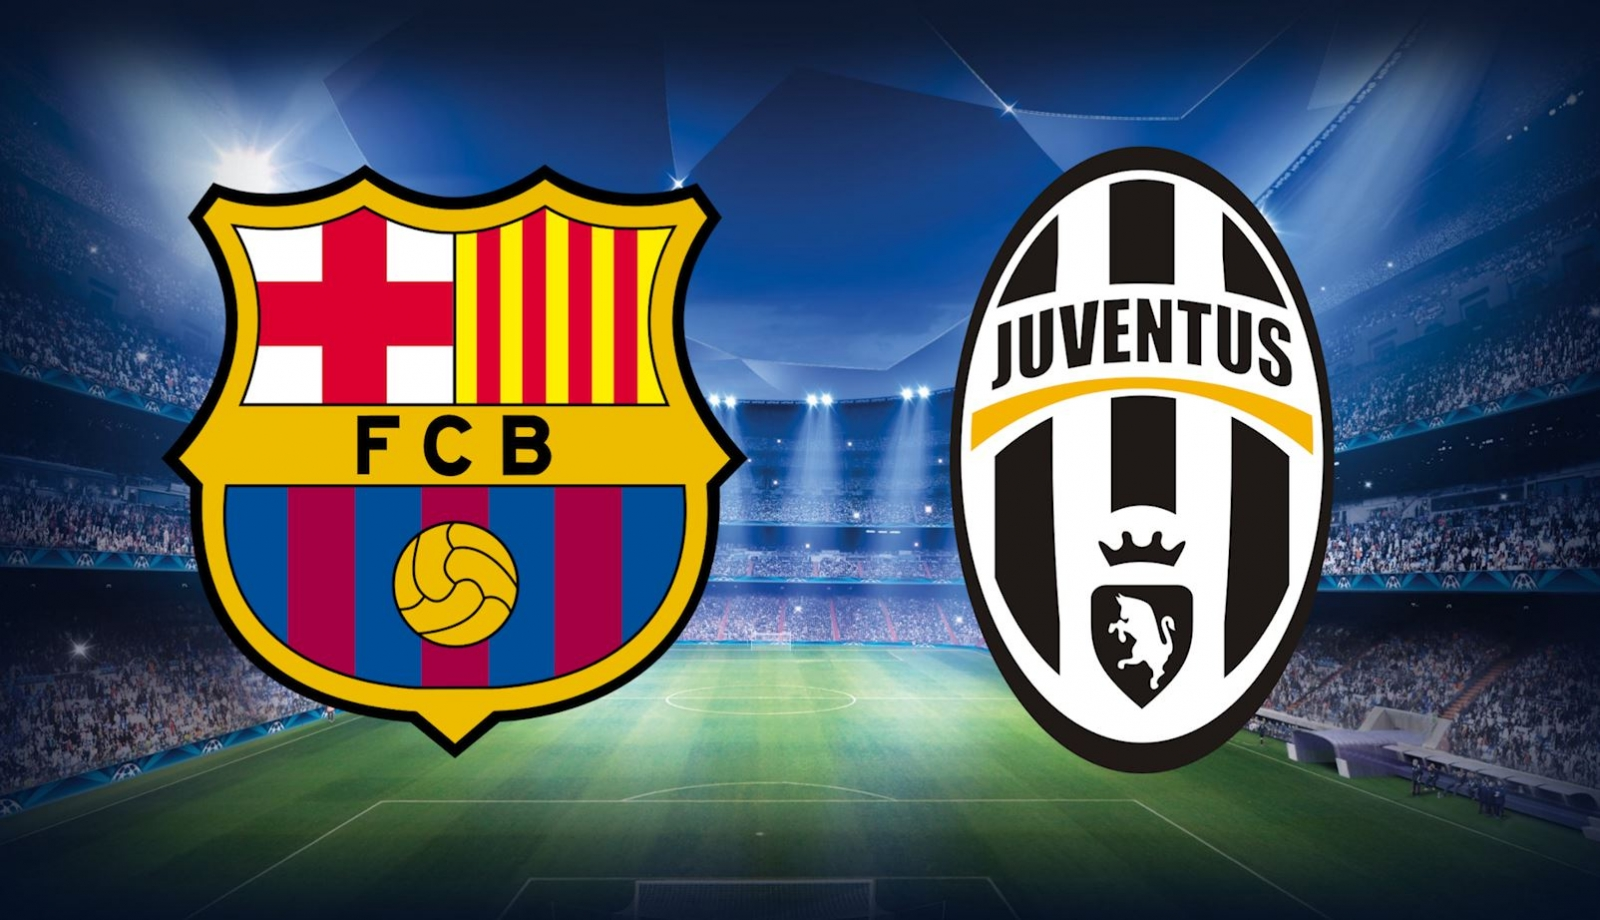 Champions League: Barcelona V Juventus: Champions League Final 2015 Preview